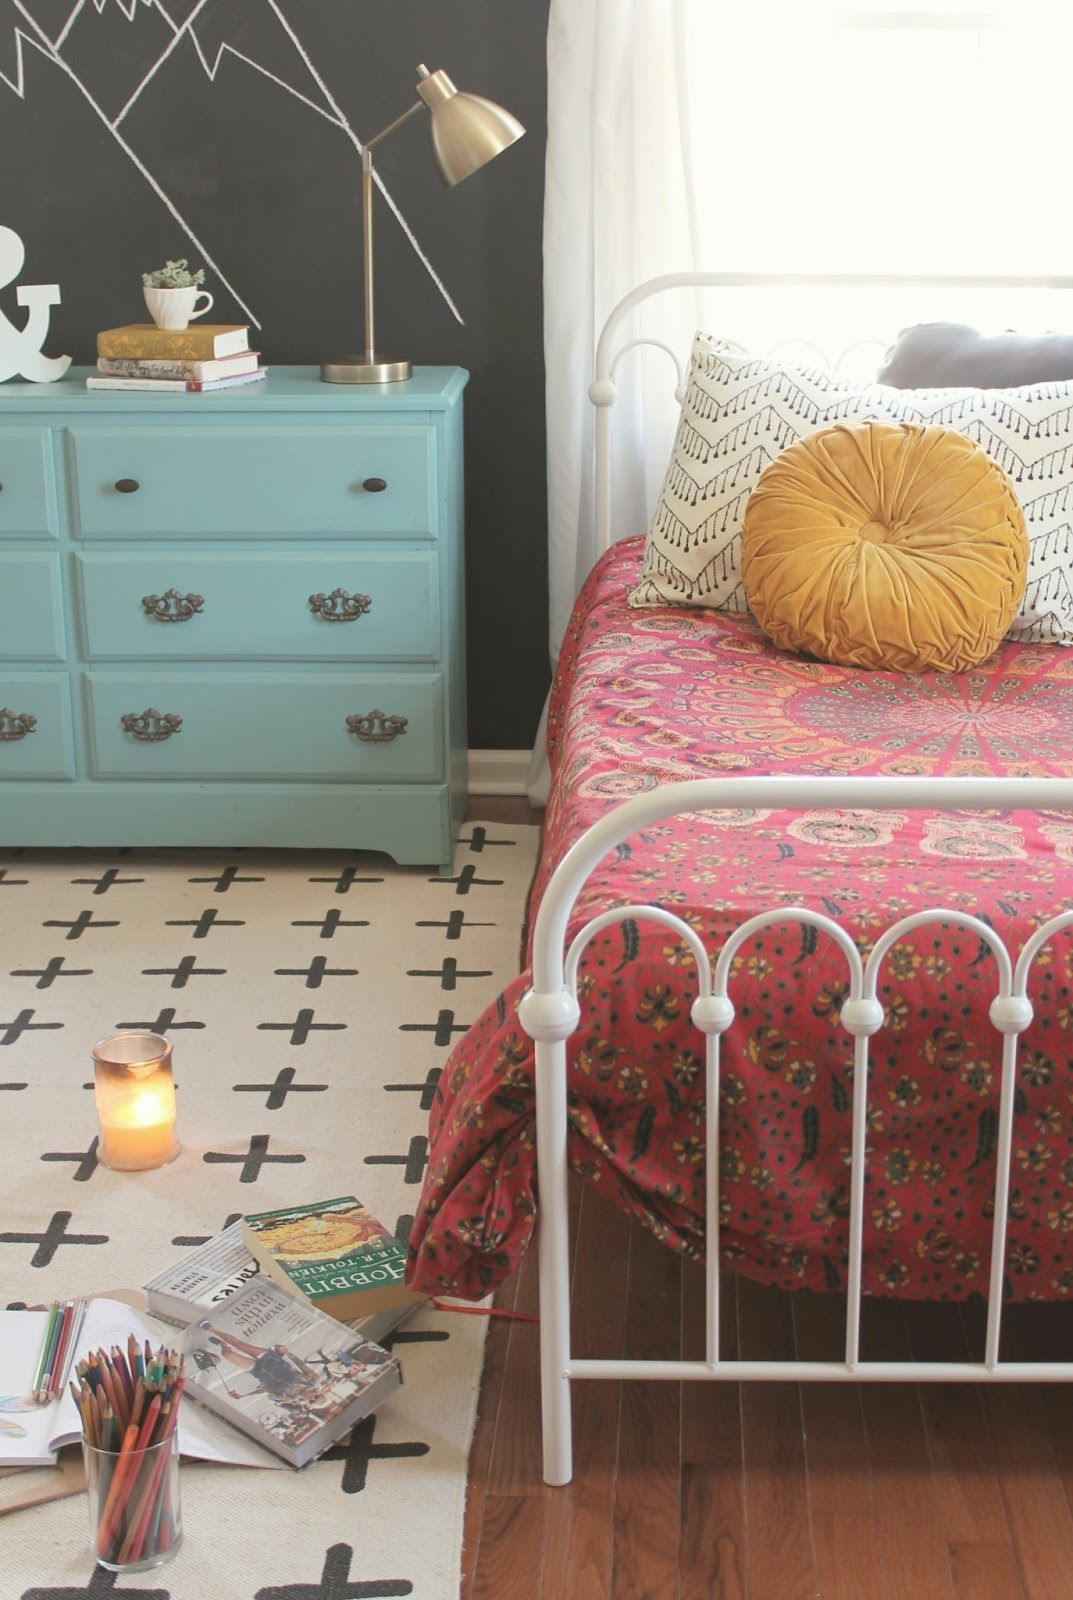 The Little Farm Diary: Teen Girlsu0027 Room Reveal {a Boho Inspired Makeover}